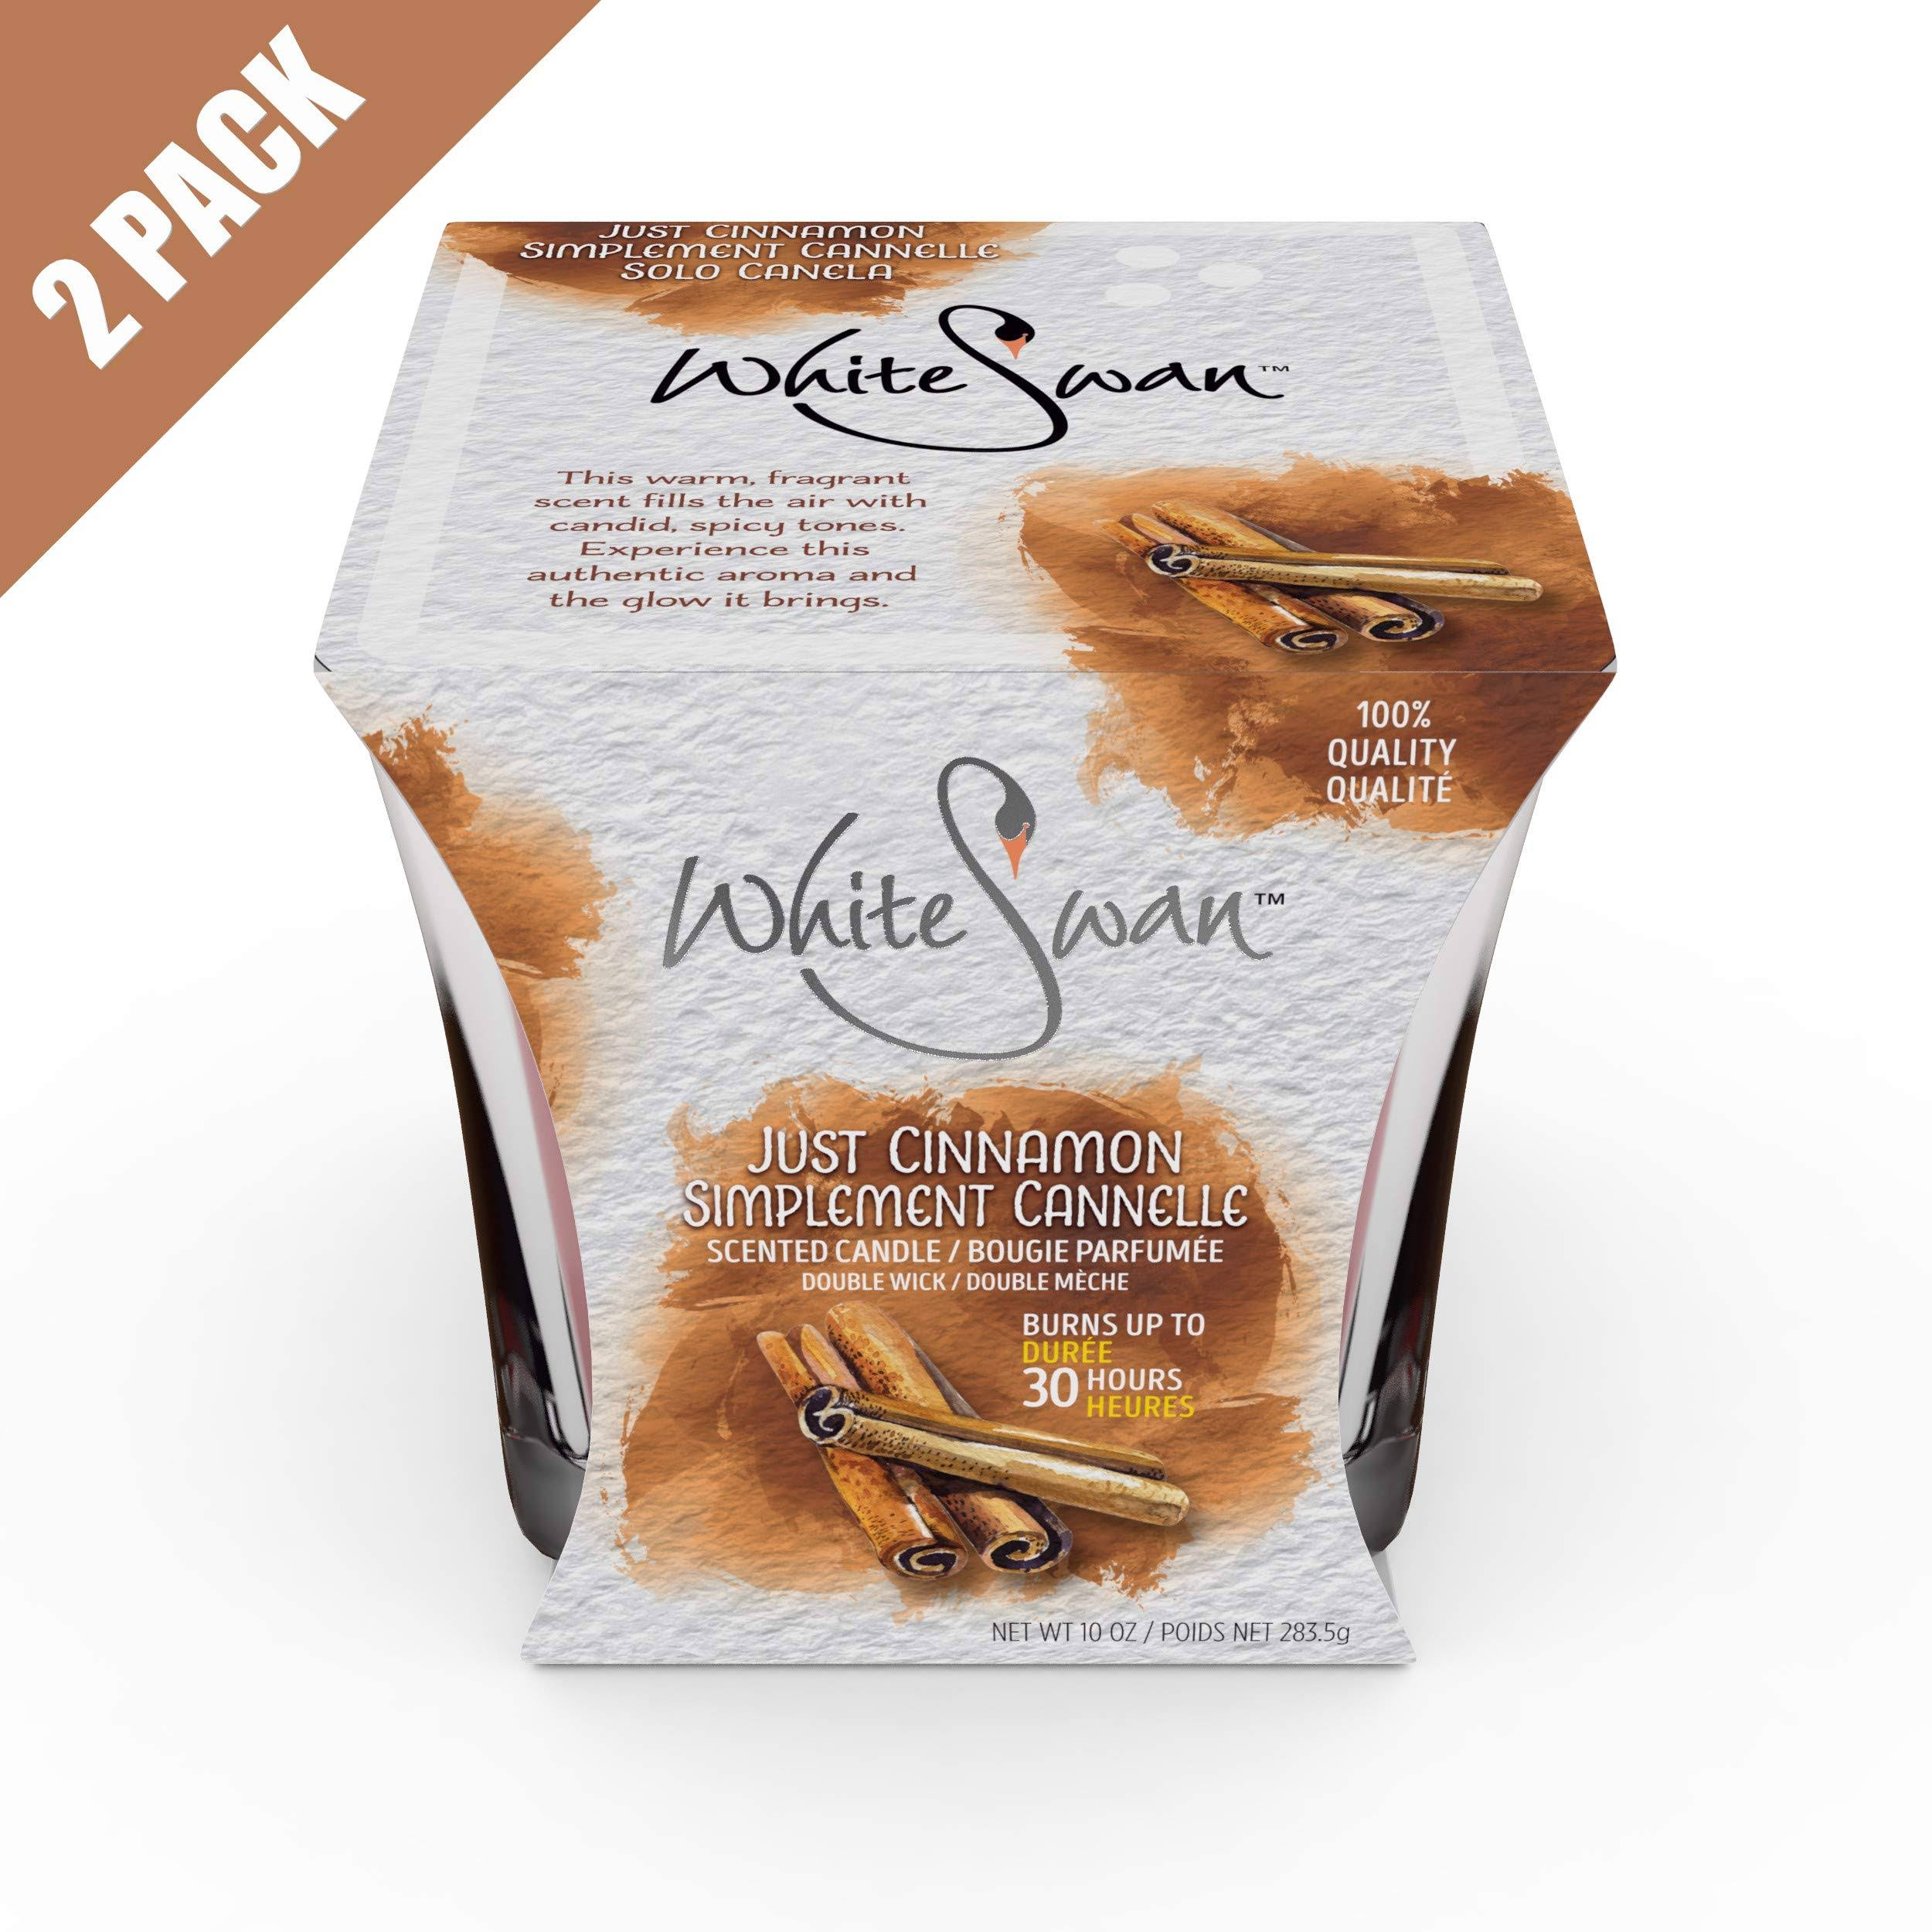 White Swan Premium Scented Candle (Just Cinnamon) & Large Candle Set - Long Lasting -30 Hrs | Pure Natural Strong Fragrance Ideal for Bath or